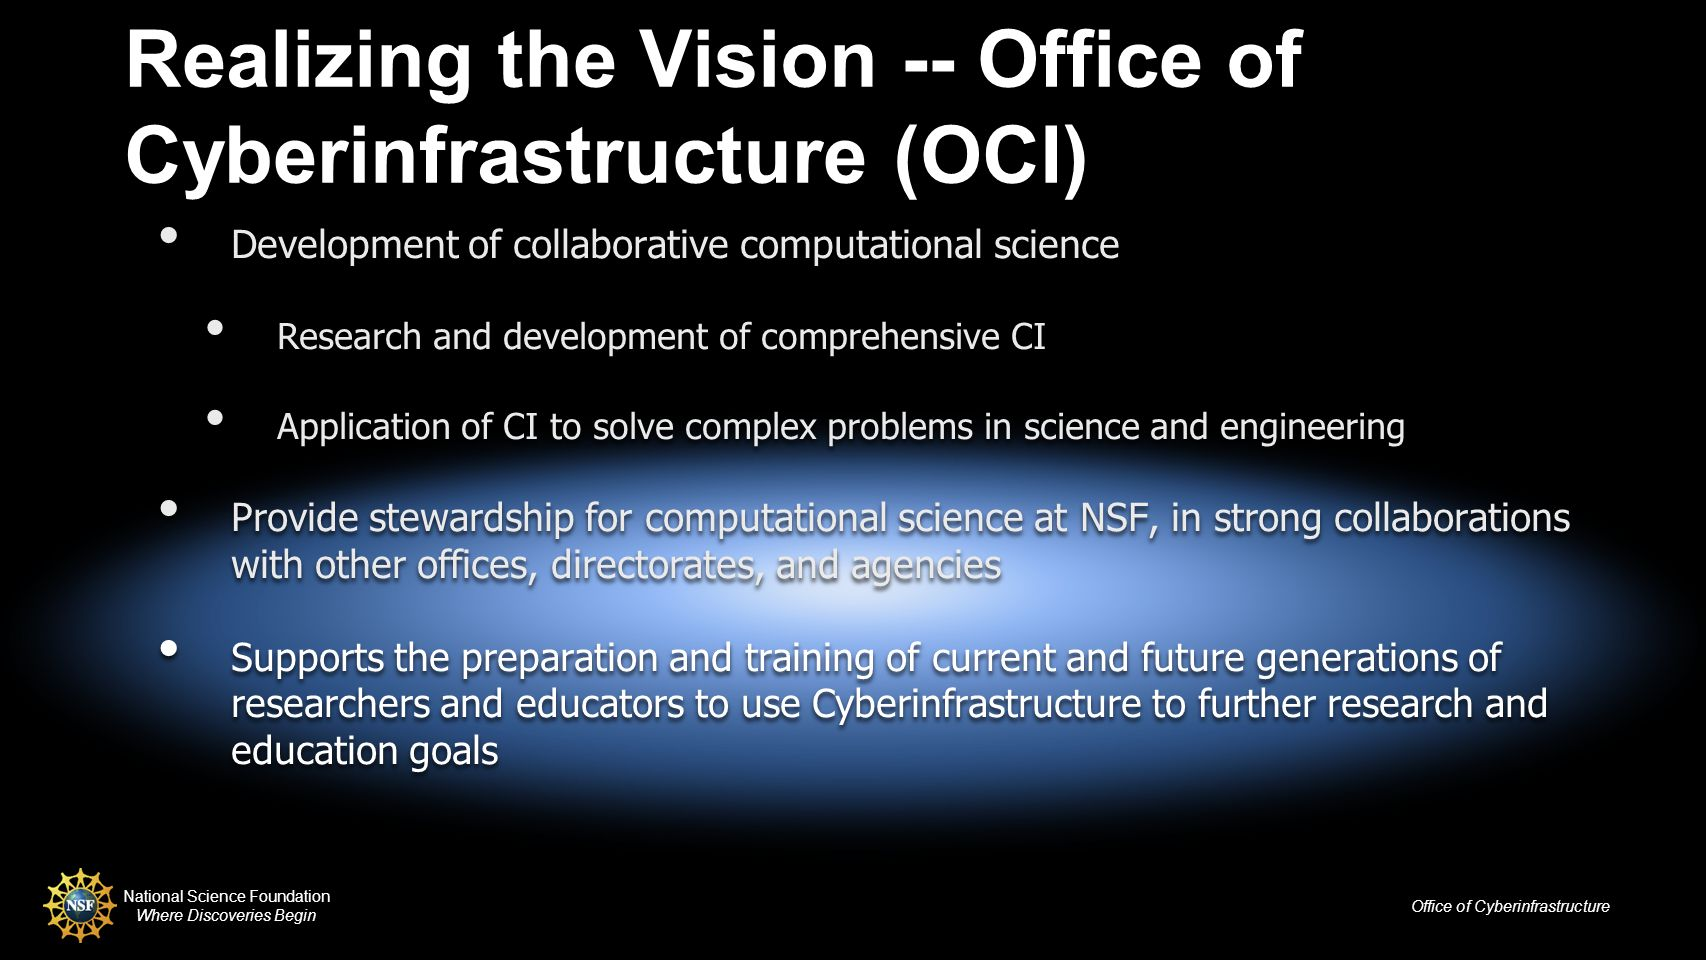 National Science Foundation Where Discoveries Begin Office of Cyberinfrastructure Realizing the Vision -- Office of Cyberinfrastructure (OCI) Development of collaborative computational science Research and development of comprehensive CI Application of CI to solve complex problems in science and engineering Provide stewardship for computational science at NSF, in strong collaborations with other offices, directorates, and agencies Supports the preparation and training of current and future generations of researchers and educators to use Cyberinfrastructure to further research and education goals Development of collaborative computational science Research and development of comprehensive CI Application of CI to solve complex problems in science and engineering Provide stewardship for computational science at NSF, in strong collaborations with other offices, directorates, and agencies Supports the preparation and training of current and future generations of researchers and educators to use Cyberinfrastructure to further research and education goals